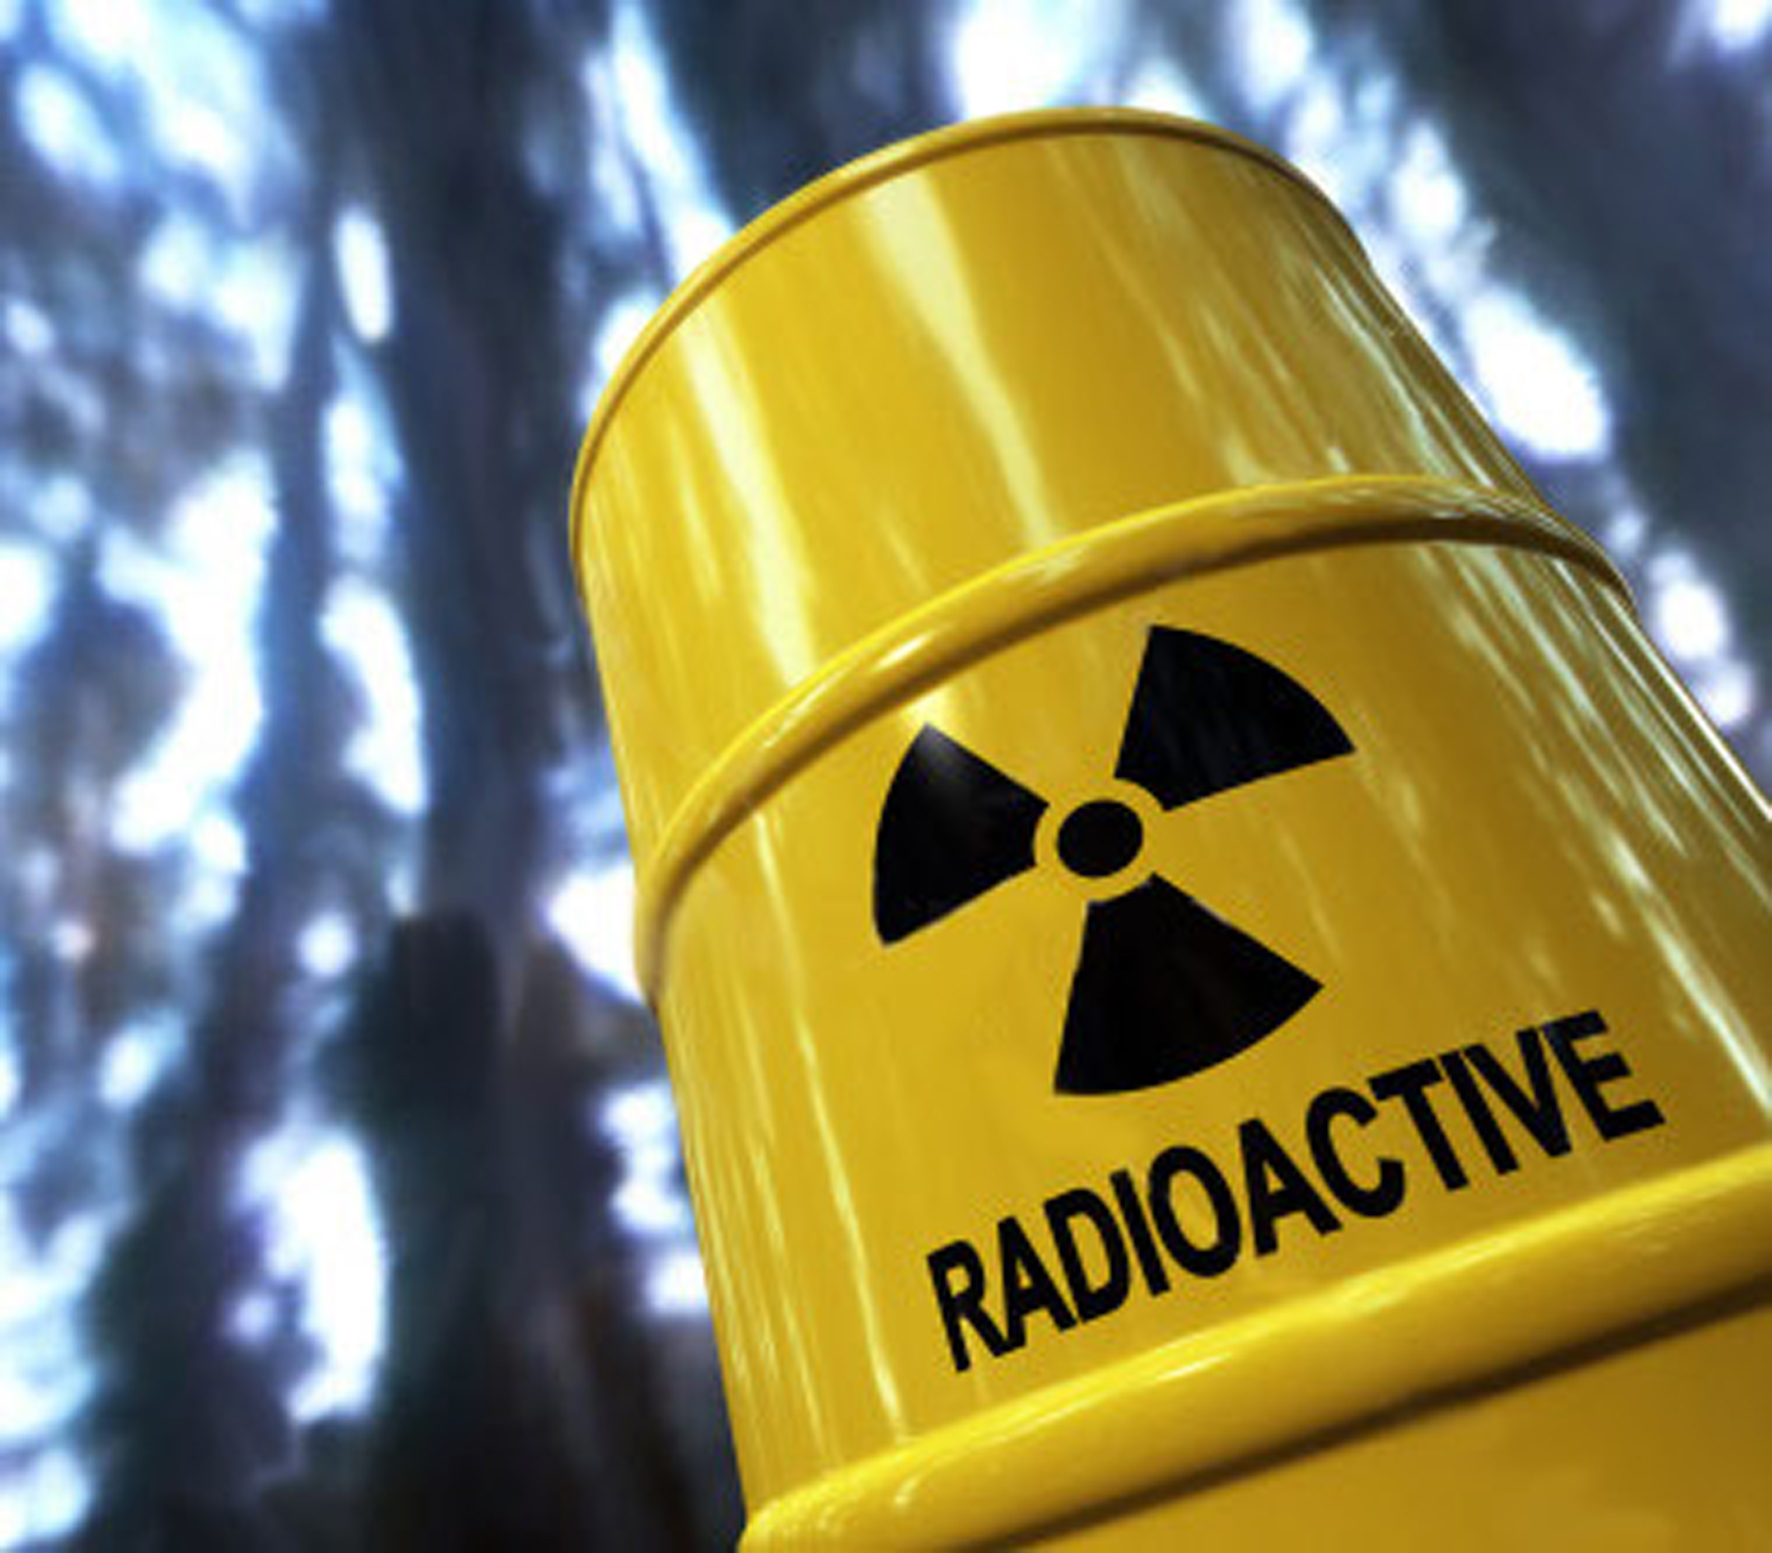 dealing with radioactive waste High-level radioactive waste management high-level radioactive waste management concerns how radioactive materials created during production of nuclear power and nuclear weapons are dealt with radioactive waste contains a mixture of short-lived and long-lived nuclides.